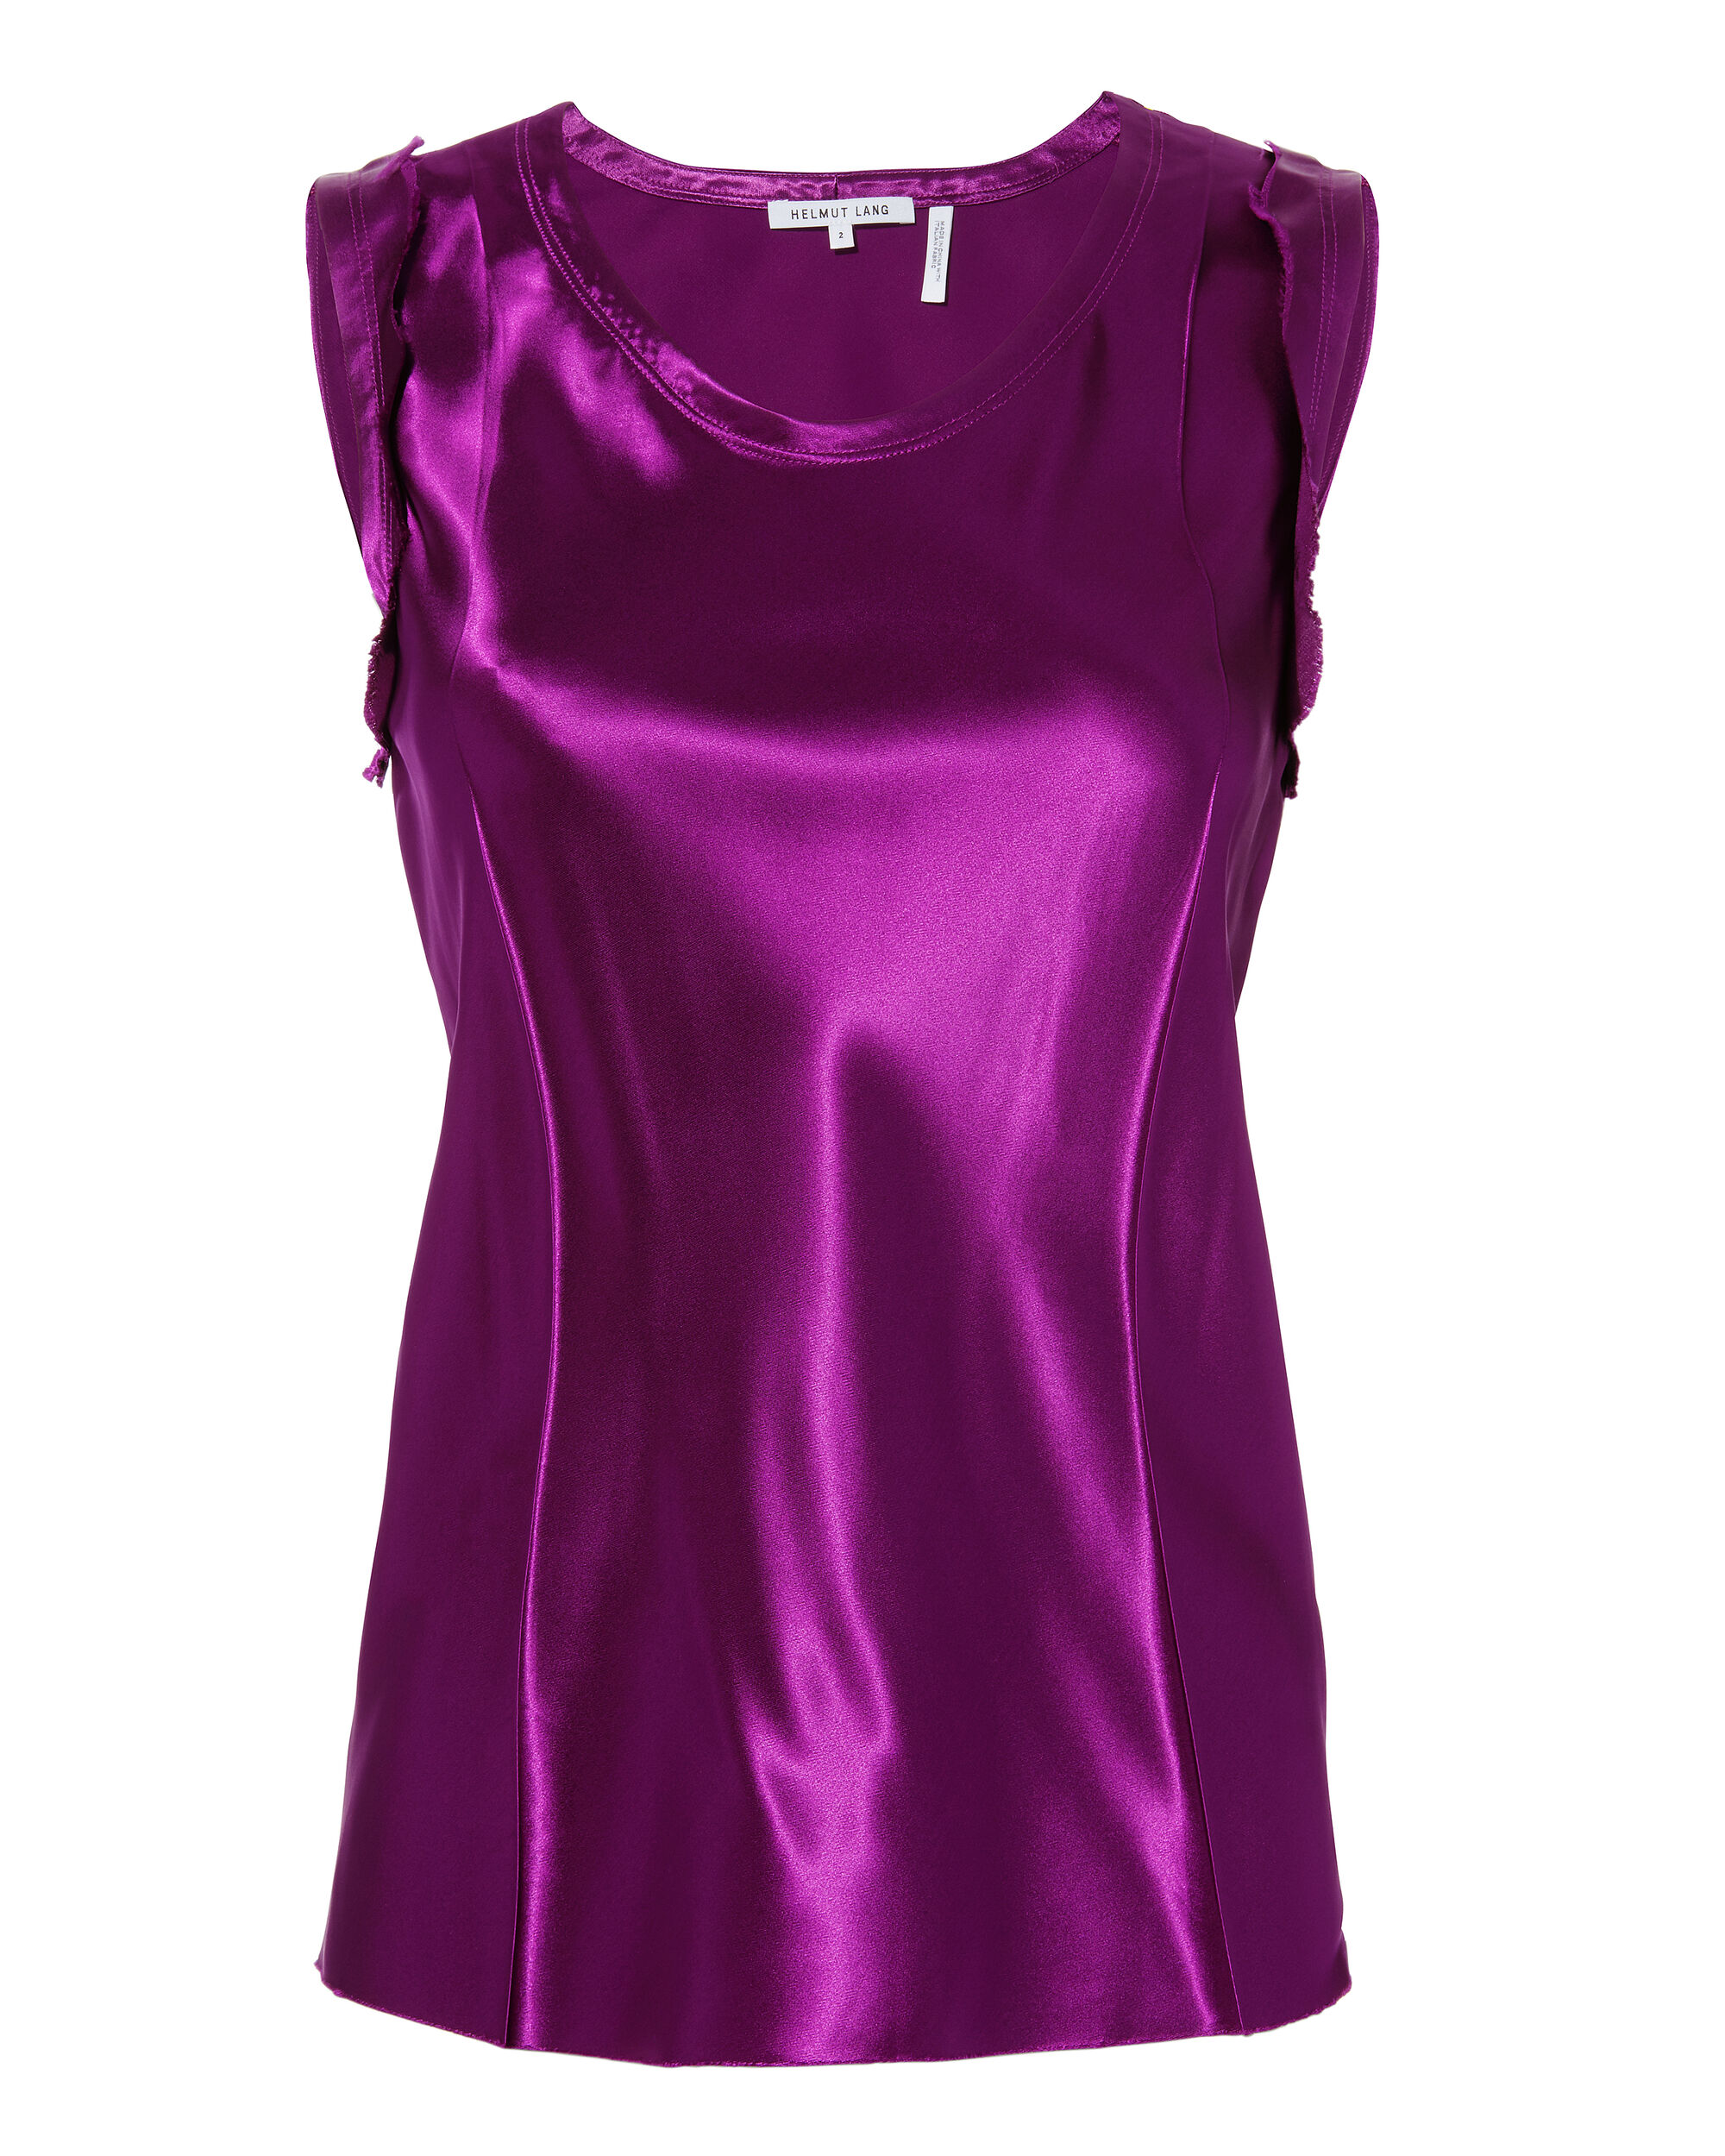 RAW EDGED SATIN TOP, SIZE US2, WOMEN, PURPLE